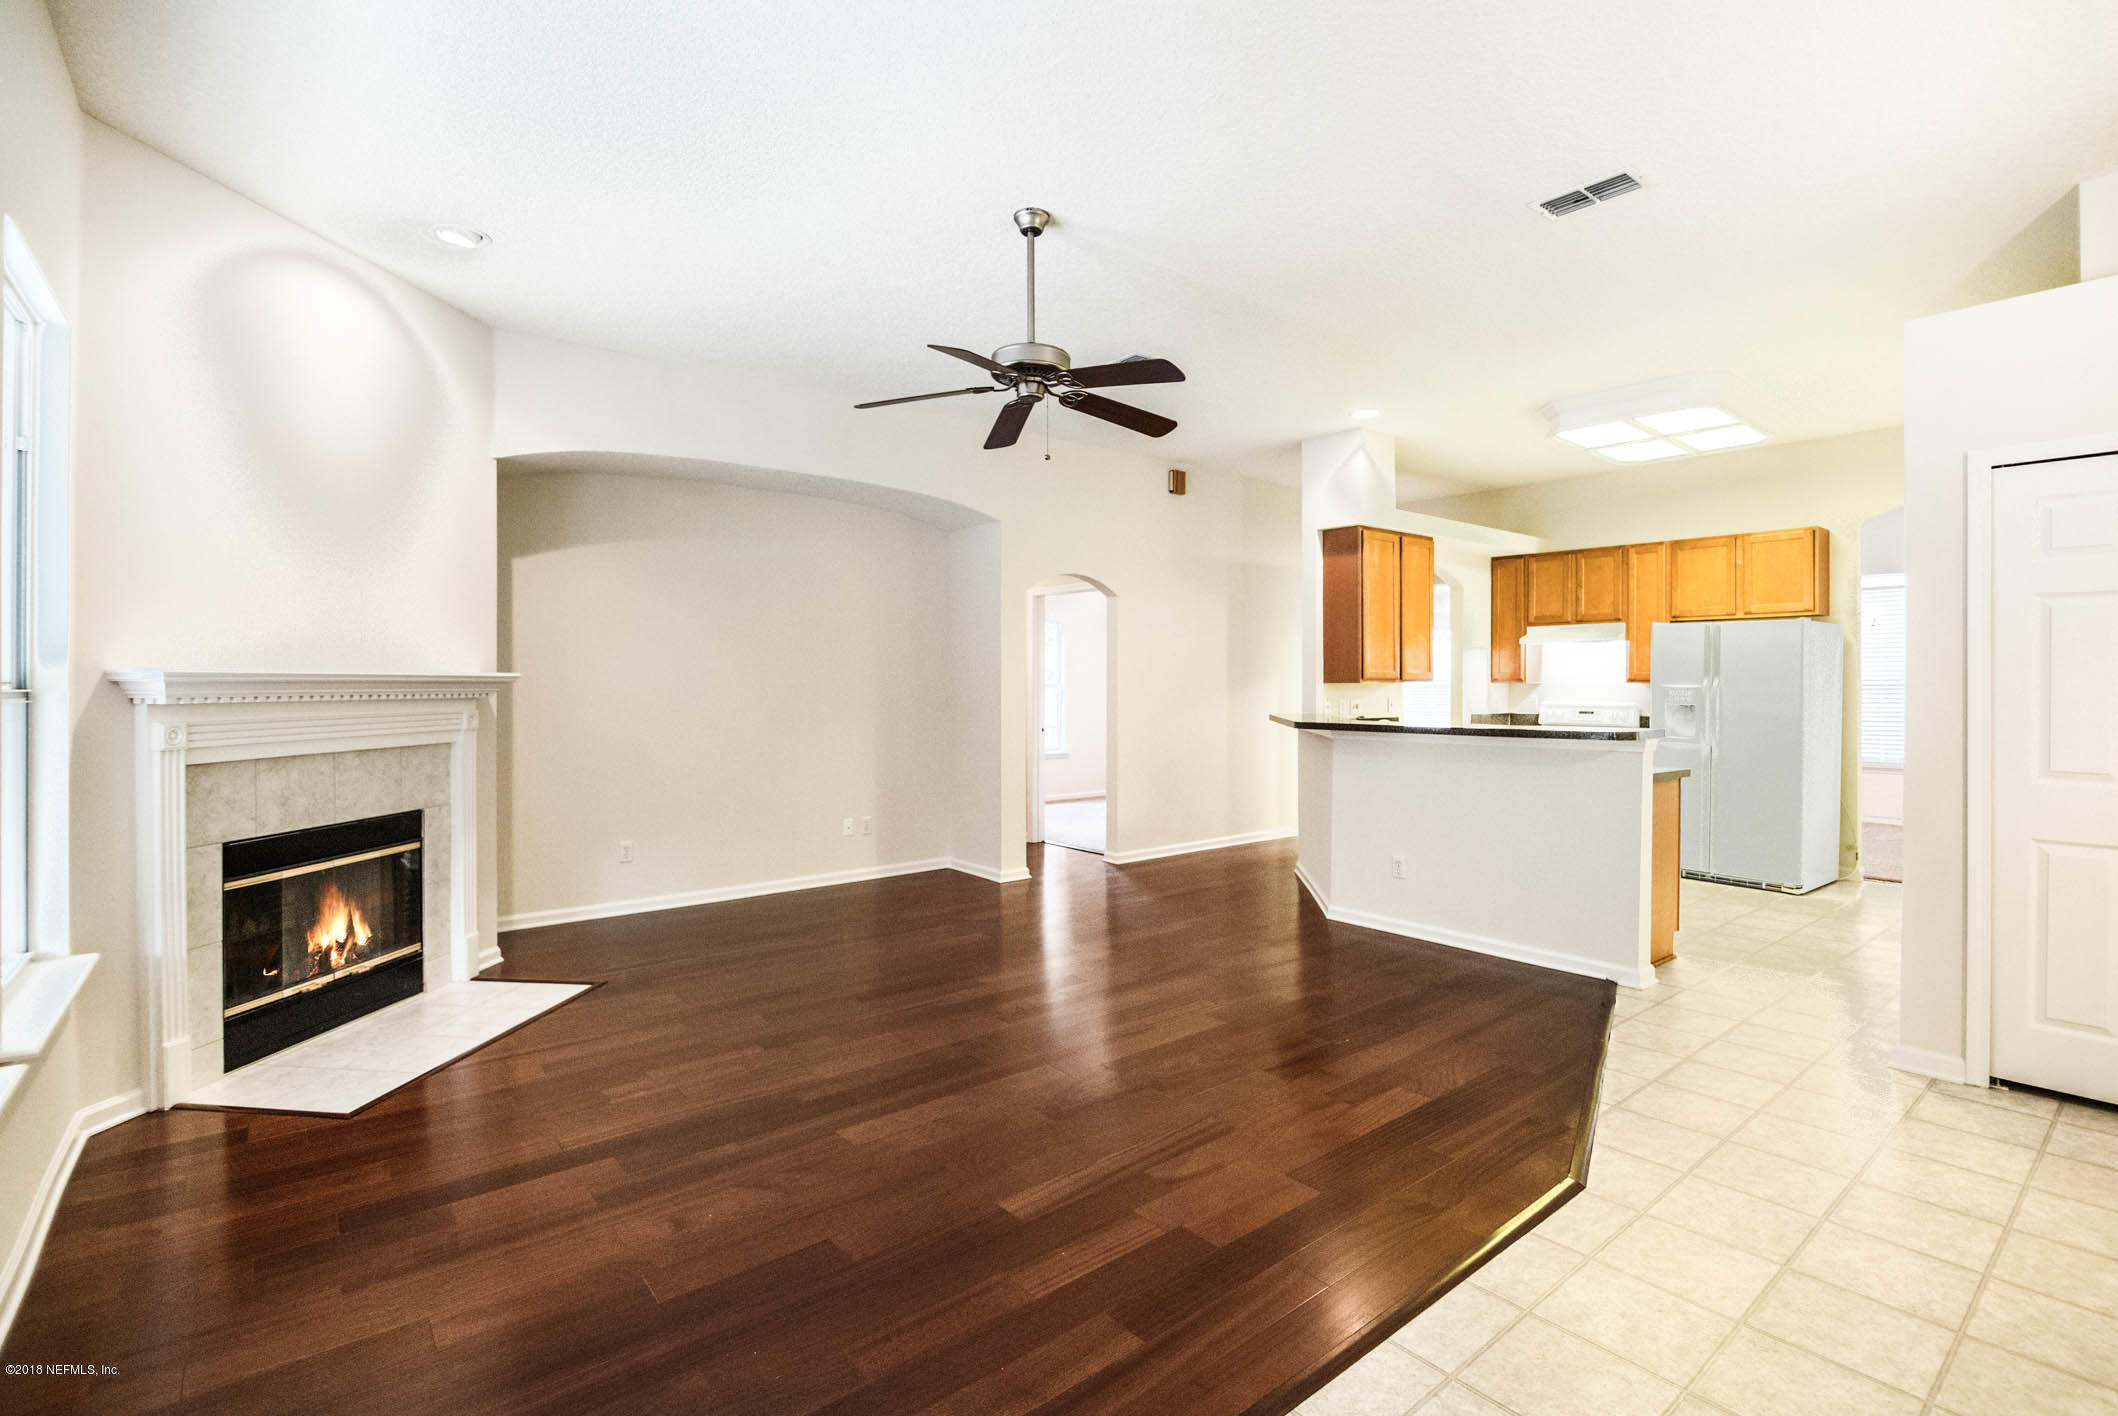 4561 CAPE ELIZABETH, JACKSONVILLE, FLORIDA 32277, 3 Bedrooms Bedrooms, ,2 BathroomsBathrooms,Residential - single family,For sale,CAPE ELIZABETH,965484